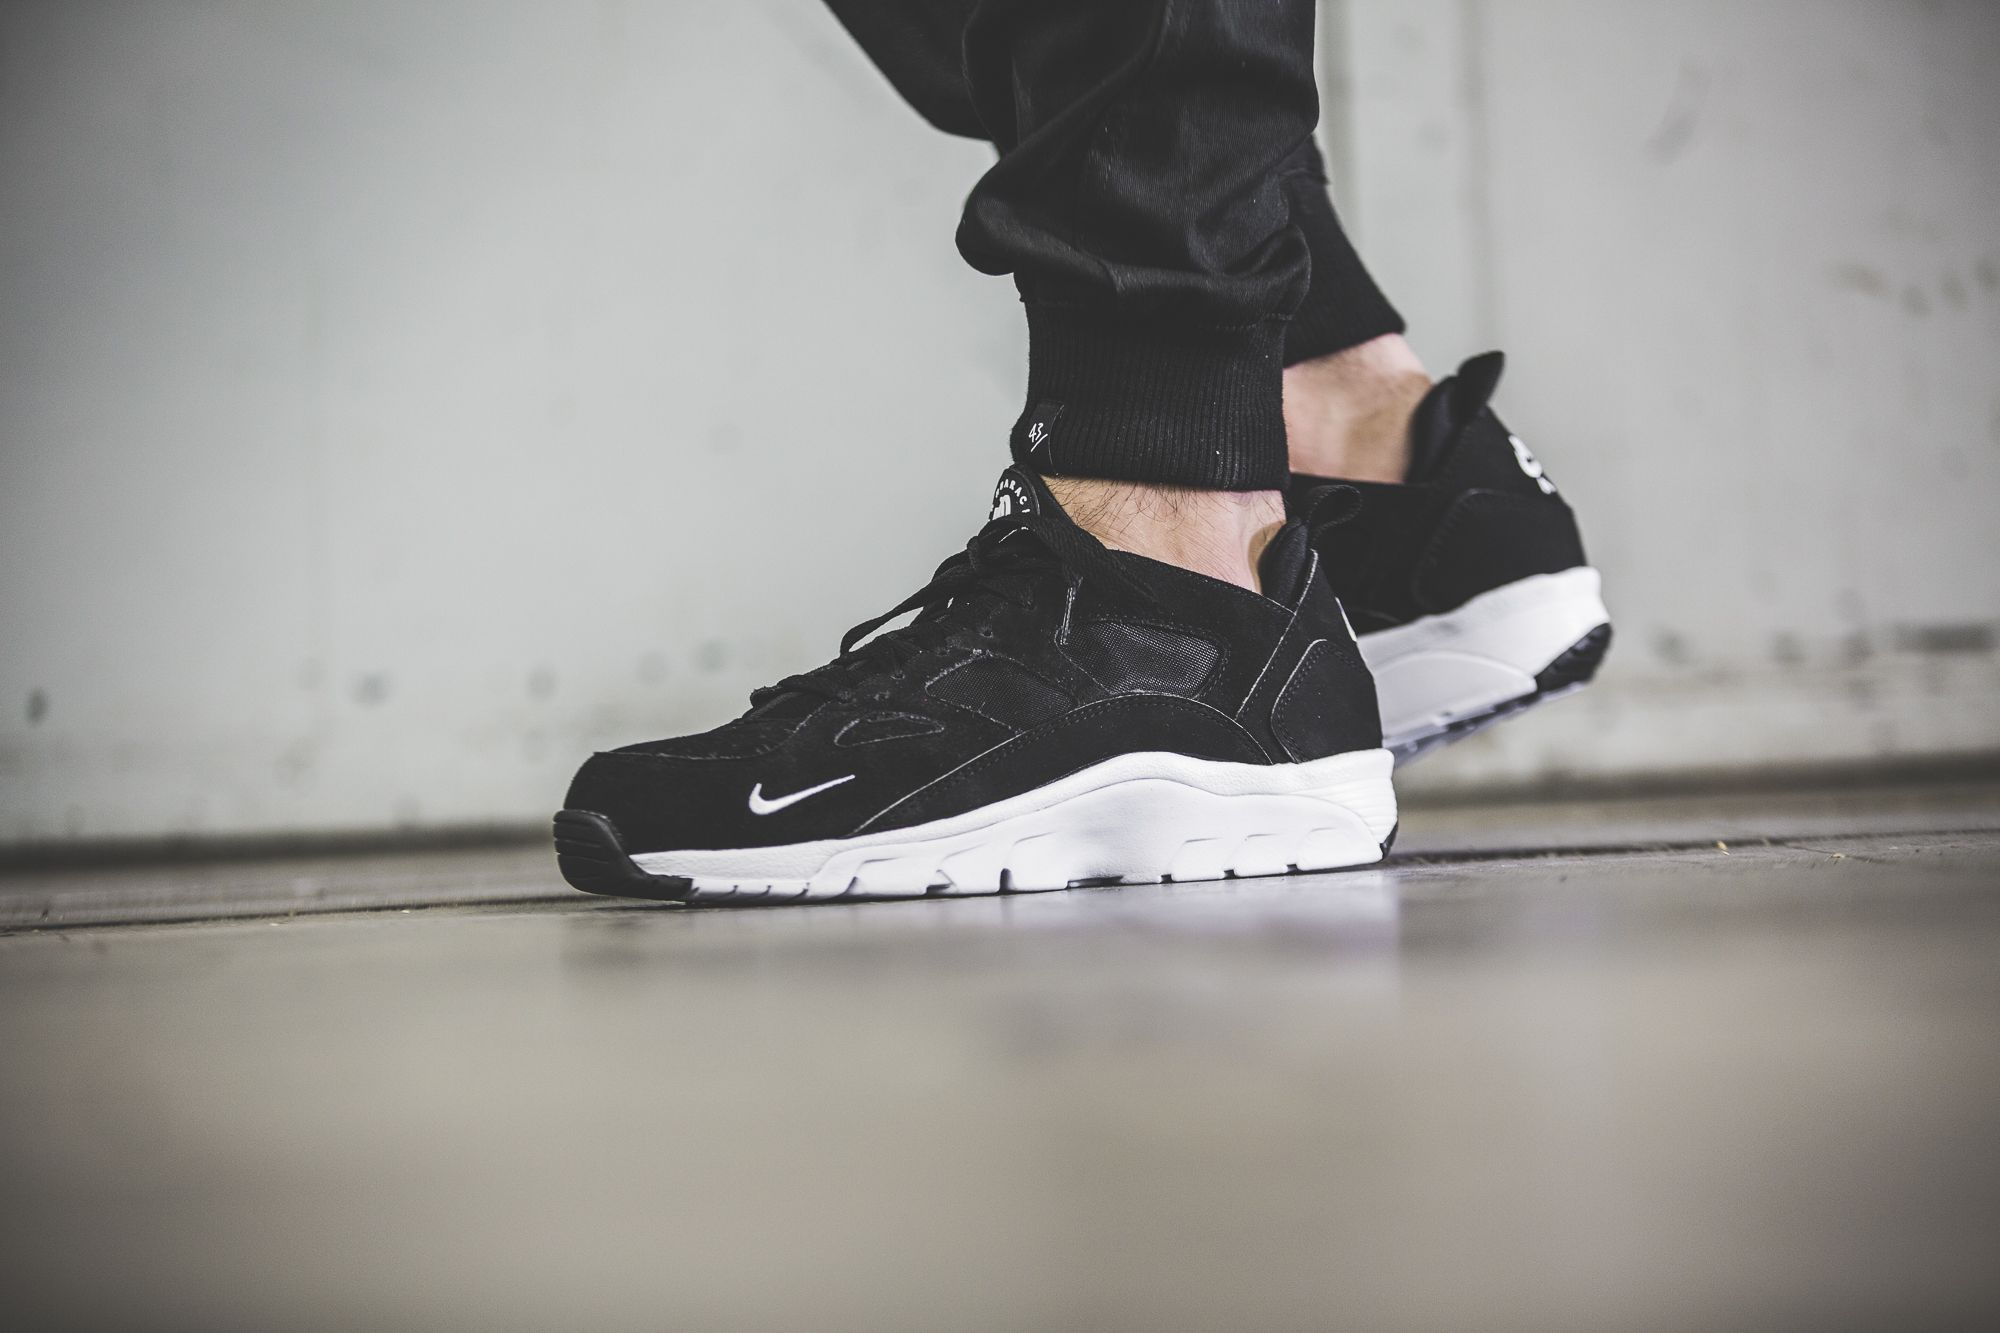 The Nike Air Trainer Huarache Low is available at our shop